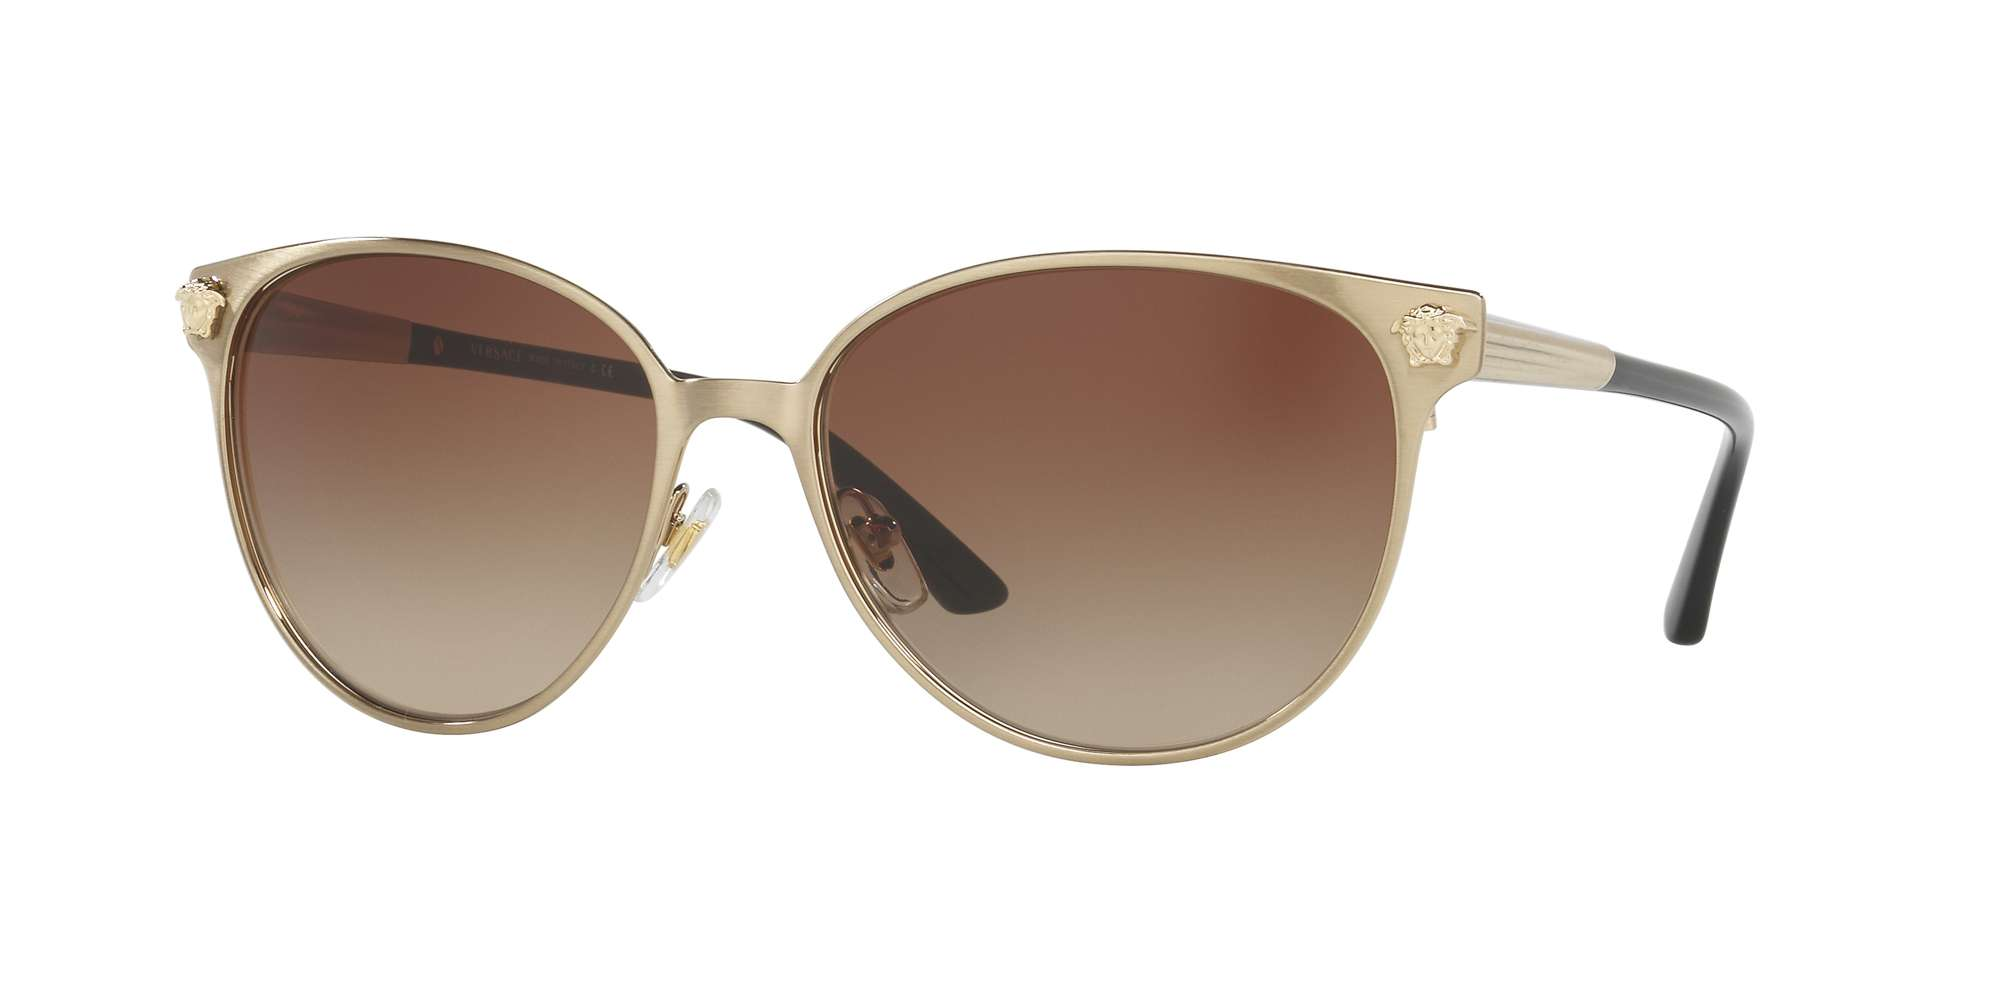 BRUSHED PALE GOLD / BROWN GRADIENT lenses